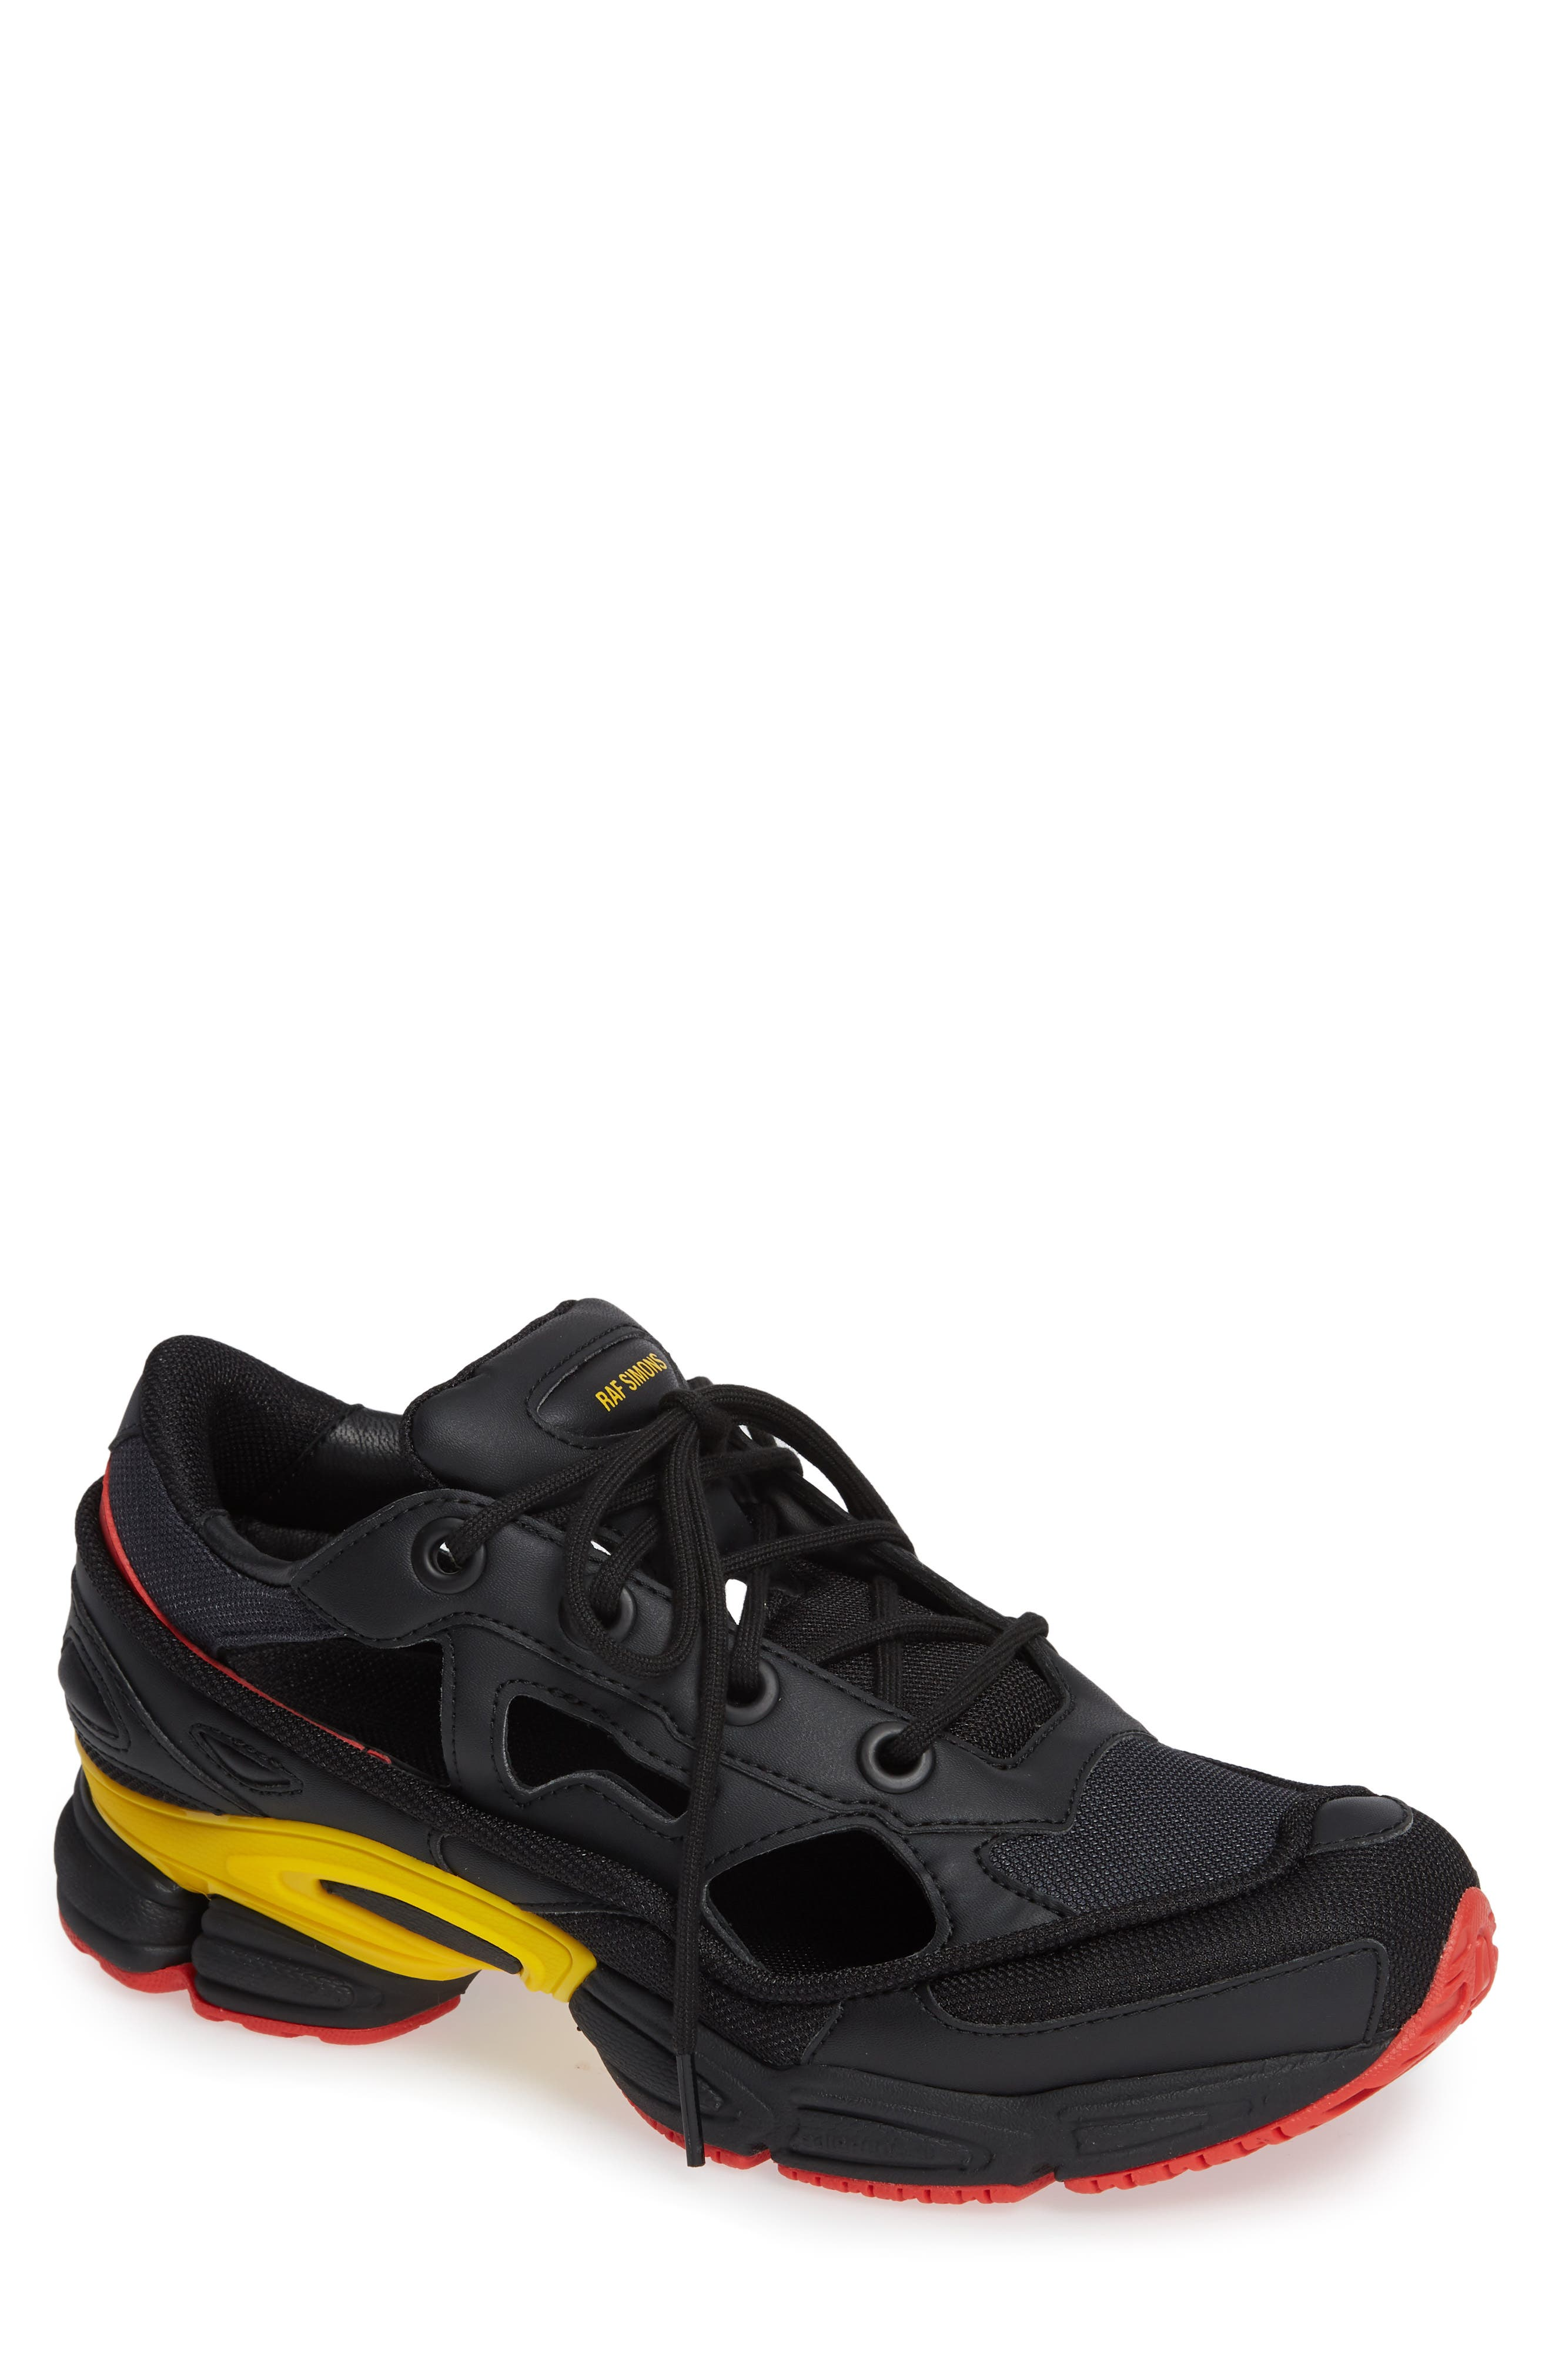 adidas by Raf Simons Replicant Ozweego Sneaker,                             Main thumbnail 1, color,                             CORE BLACK/ NIGHT GREY